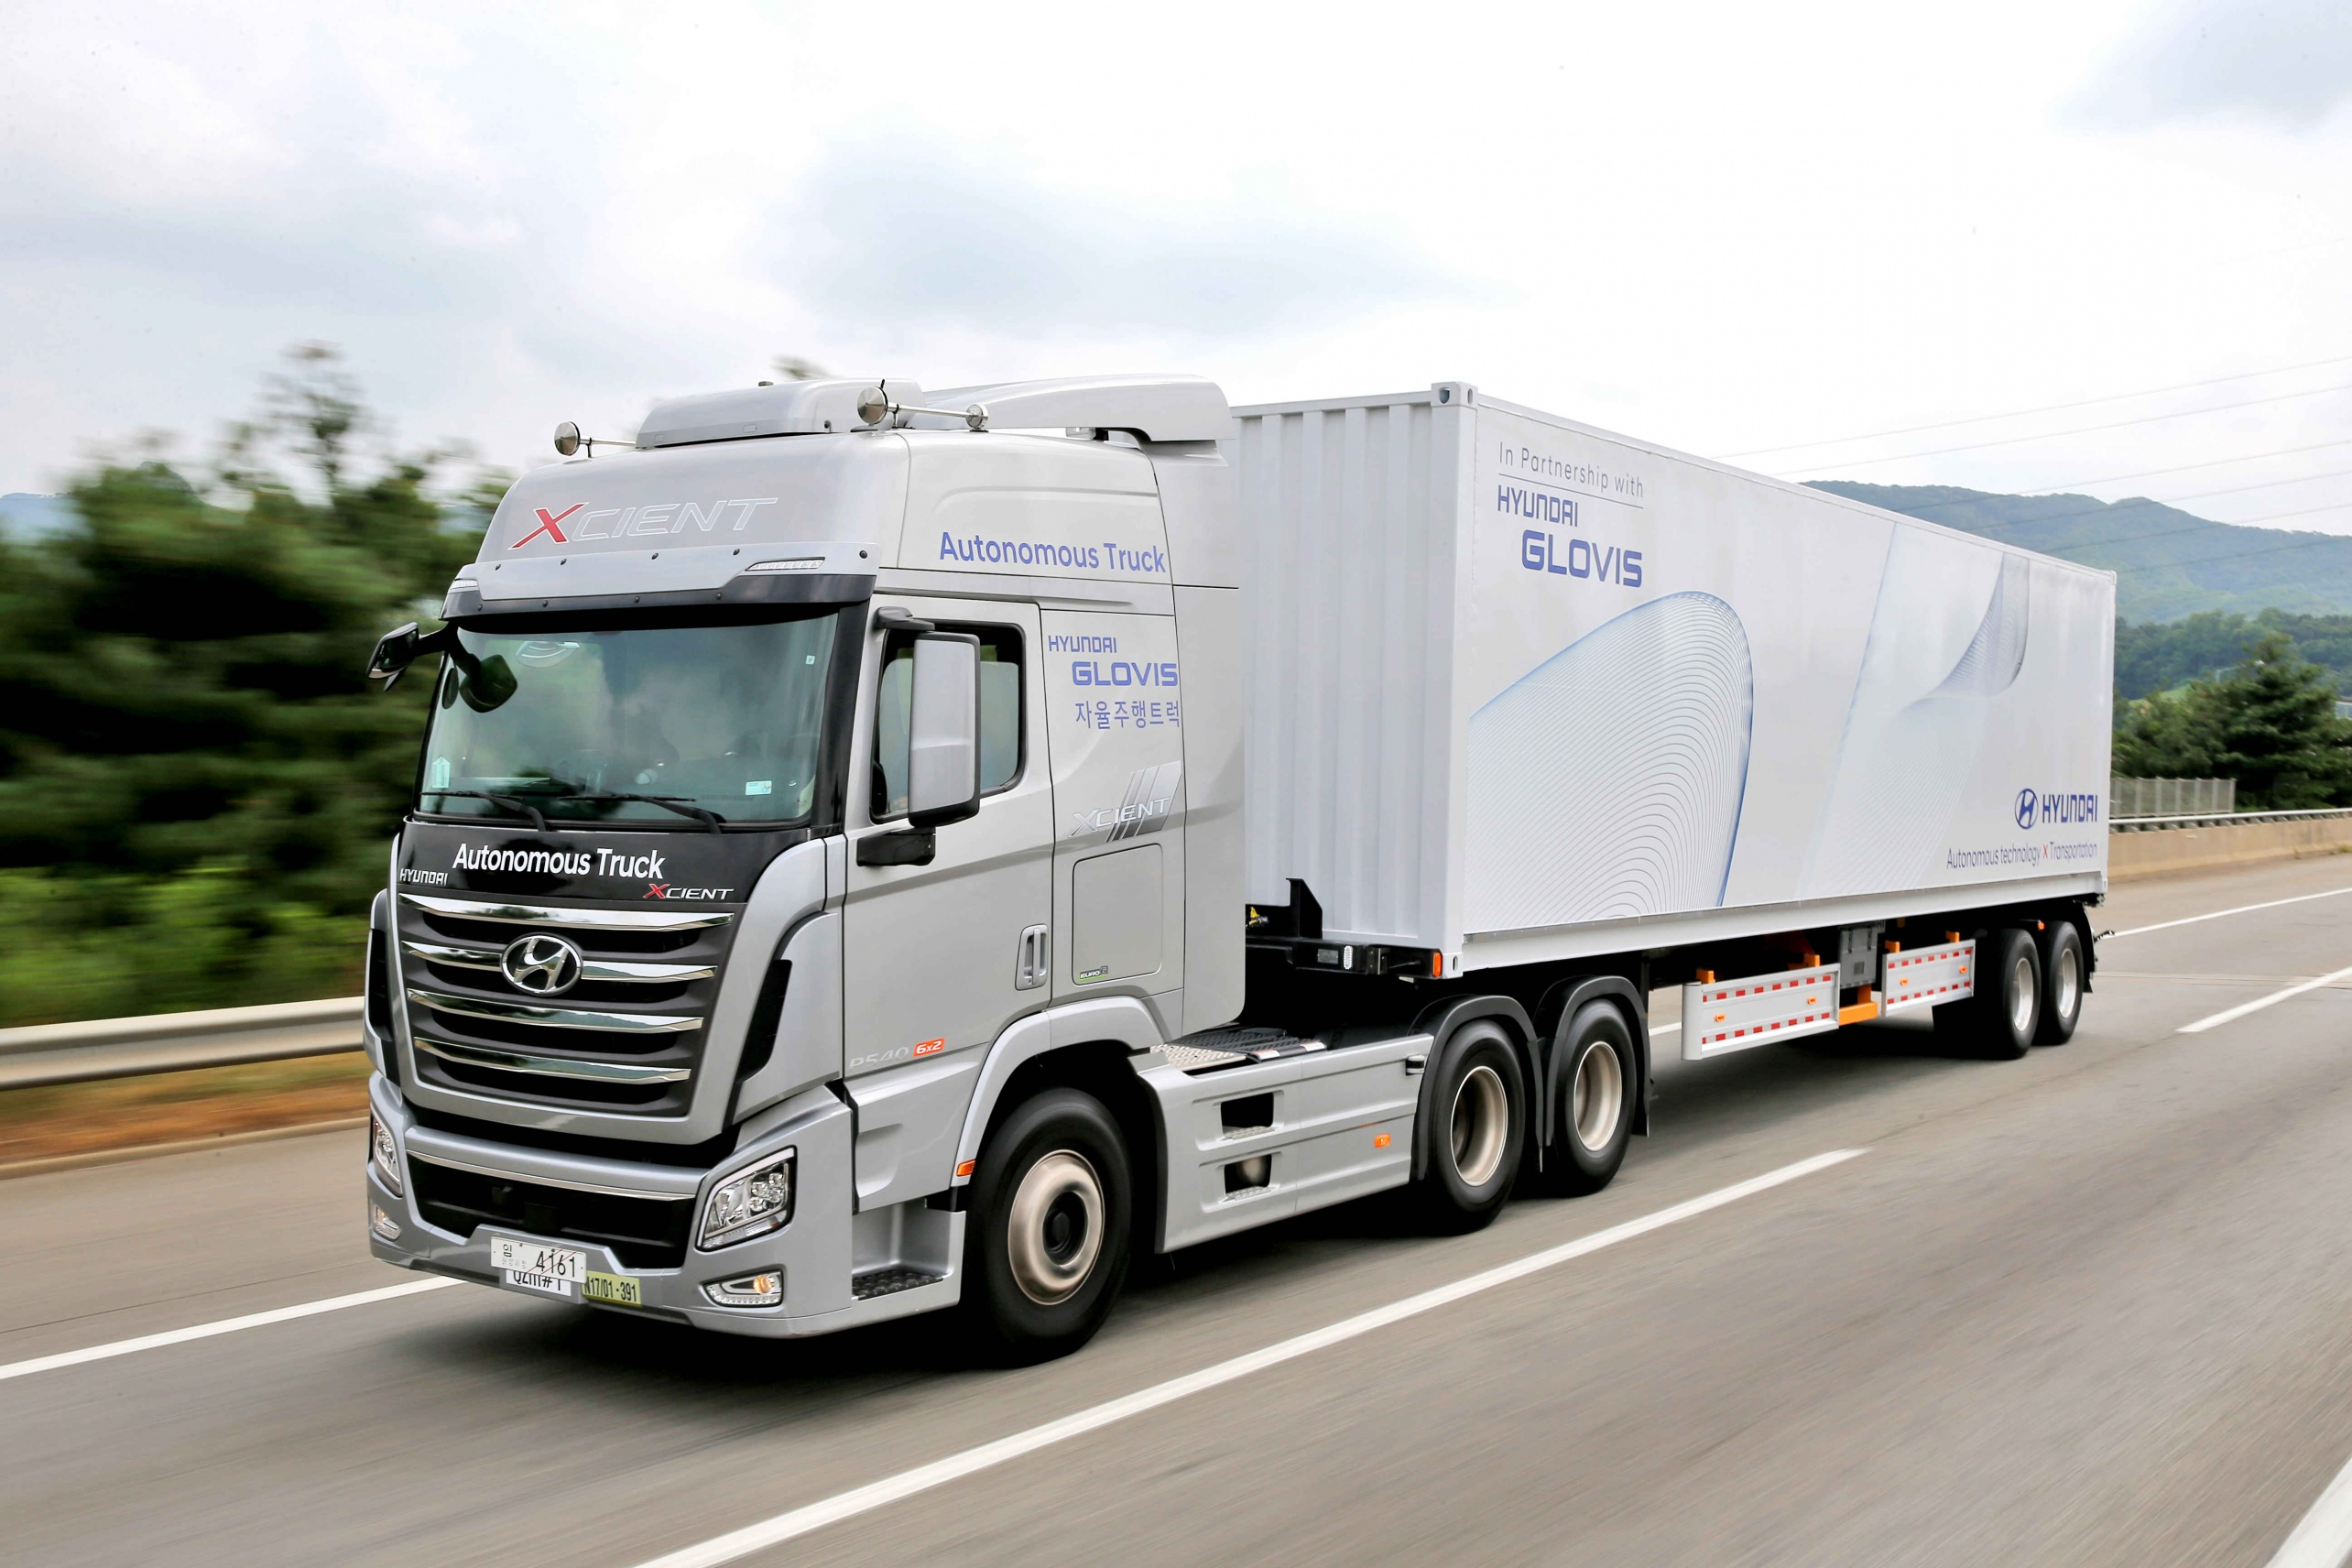 Hyundai___s First Domestic Autonomous Truck 3.jpg